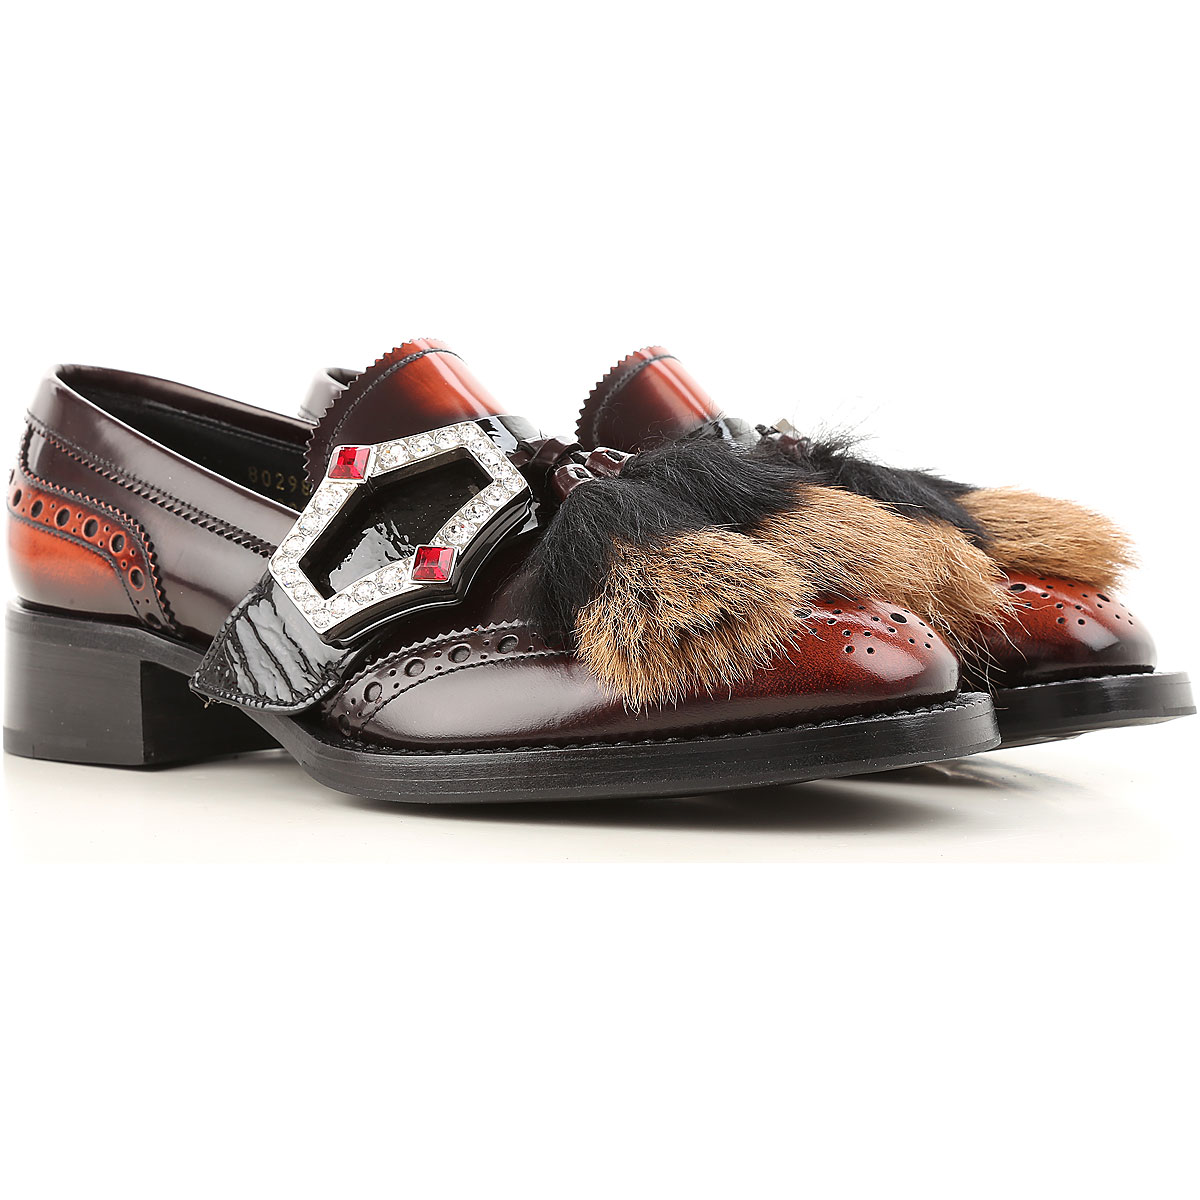 Prada Loafers for Women in Outlet tabacco USA - GOOFASH